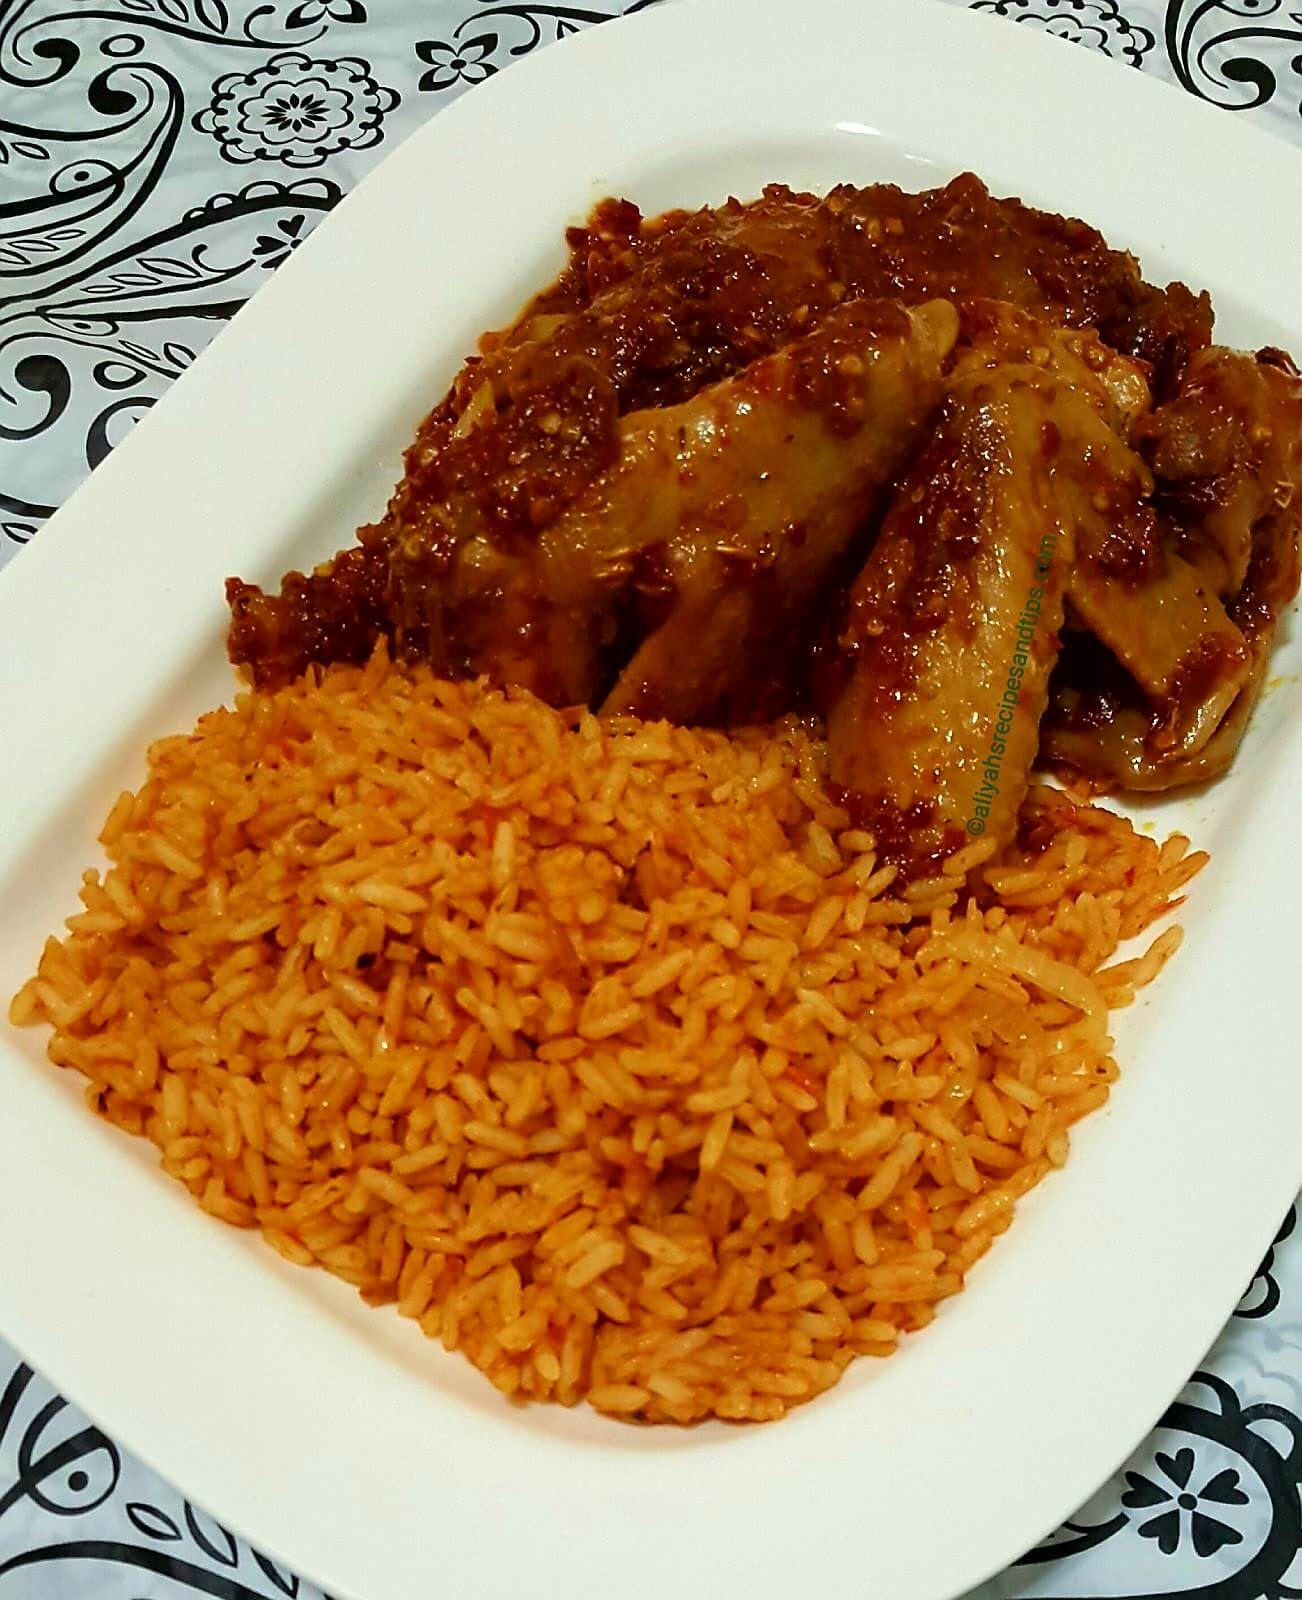 Nigerian jollof rice, recipe, beautiful, cooking, Ghana jollof, Ghana, traditional, African jollof rice, food, Senegalese, Chicken, Party jollof rice, Spicy, coconut jollof rice, Aliyah recipes, Party rice, Nigerian rice